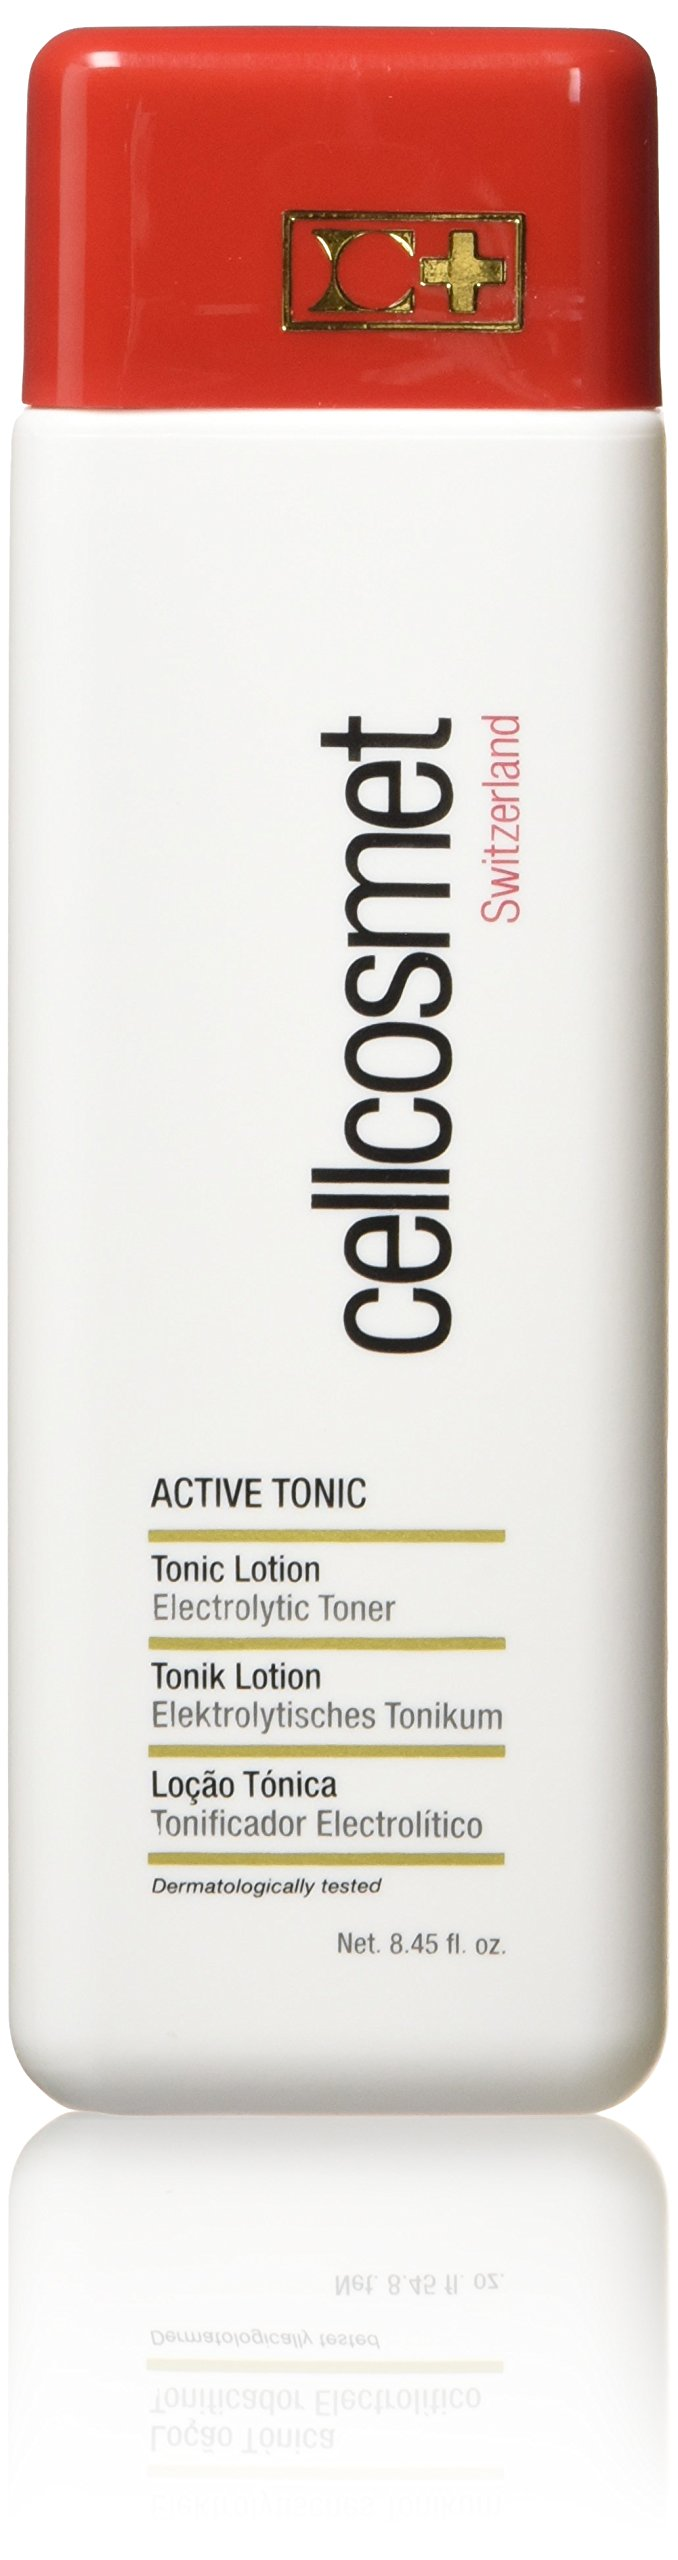 Cellcosmet Active Tonic 8.45 fl oz 250ml by Cellcosmet